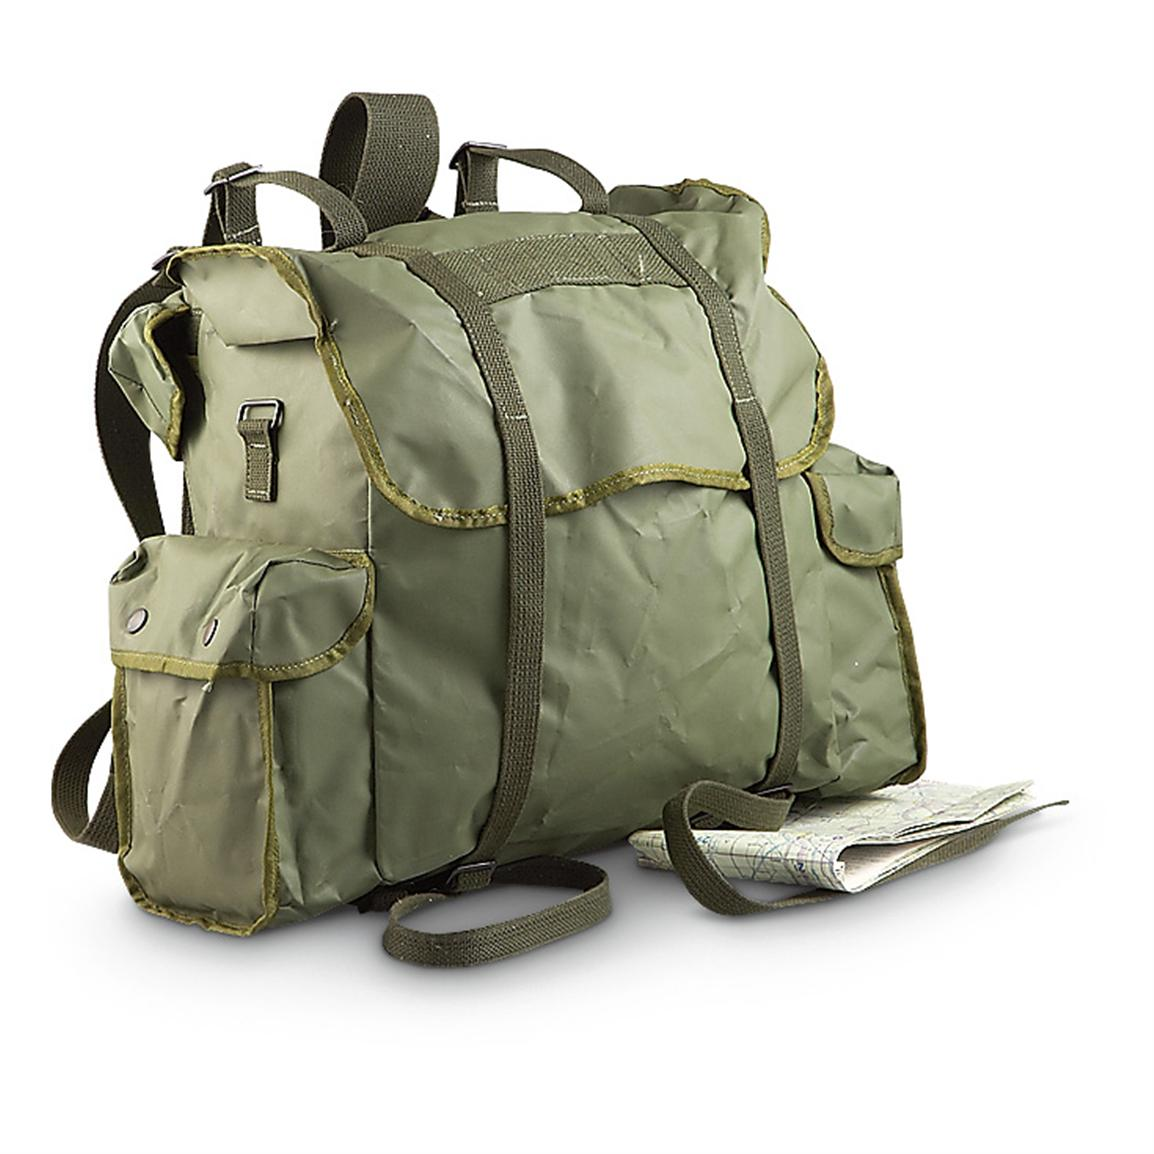 Waterproof Military Backpack 6i5MDvV7